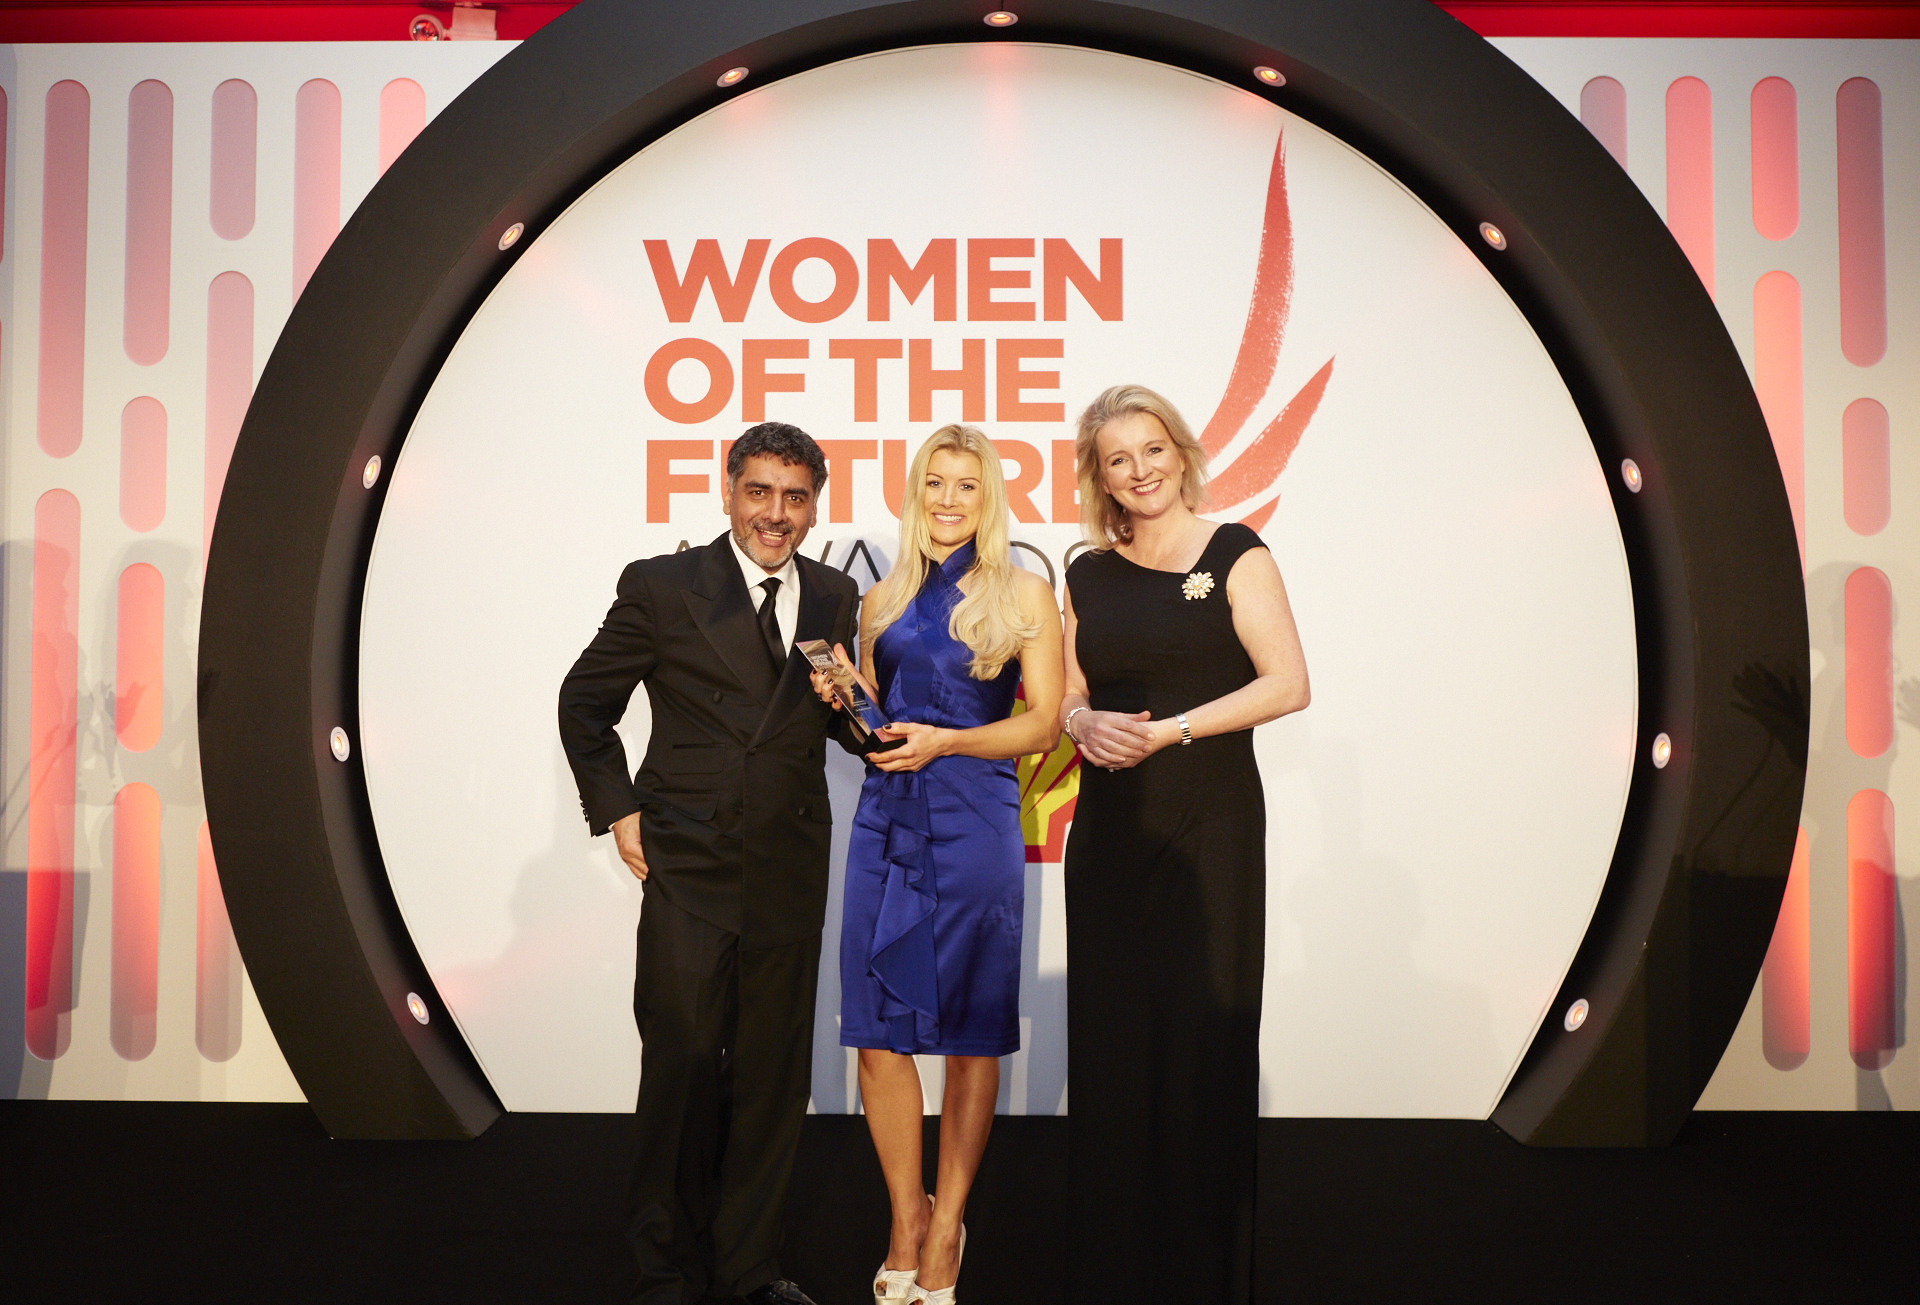 Women of the Future Awards: The winners